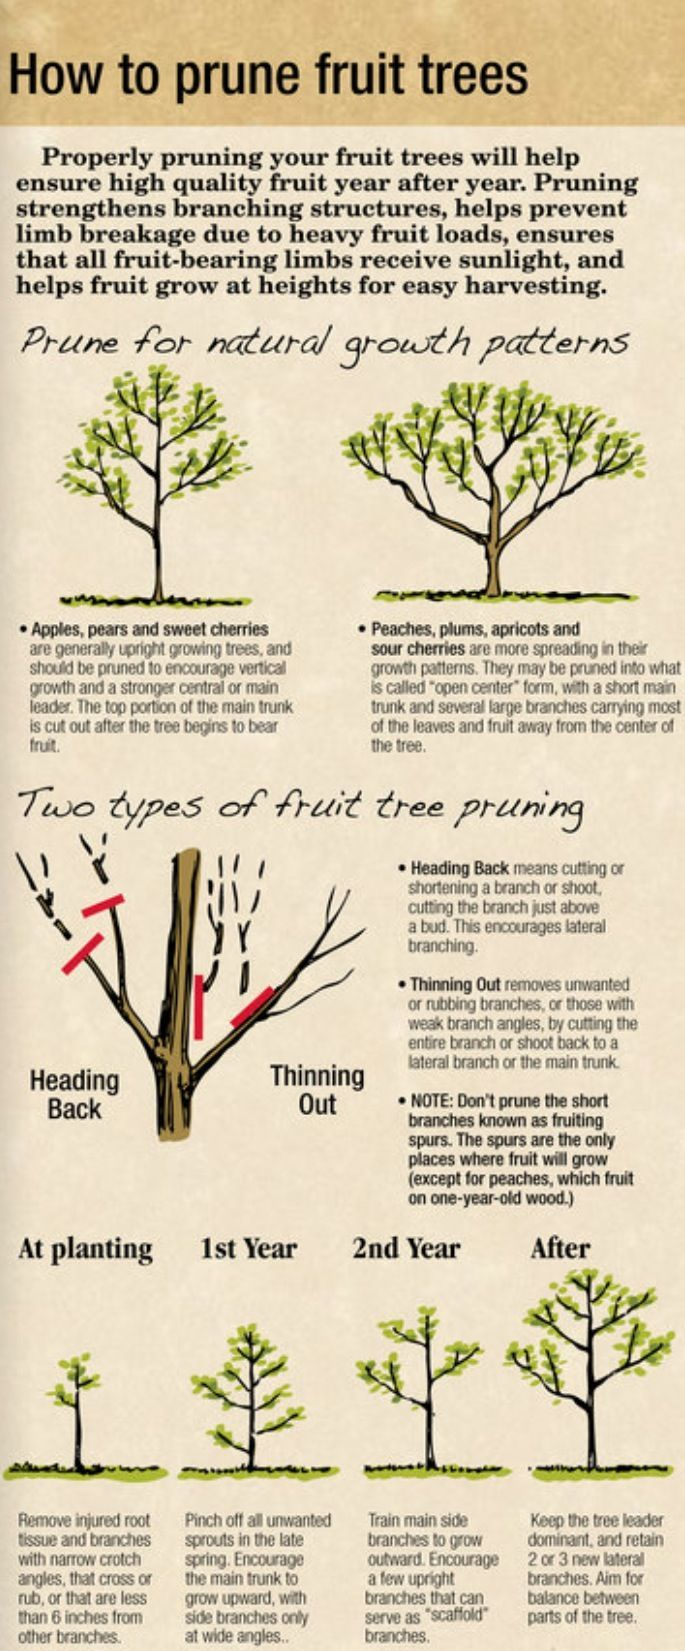 How to prune your fruit trees infographic! Pruning your trees can increase their fruit production as well. #FruitTrees #GrowingFruitTrees